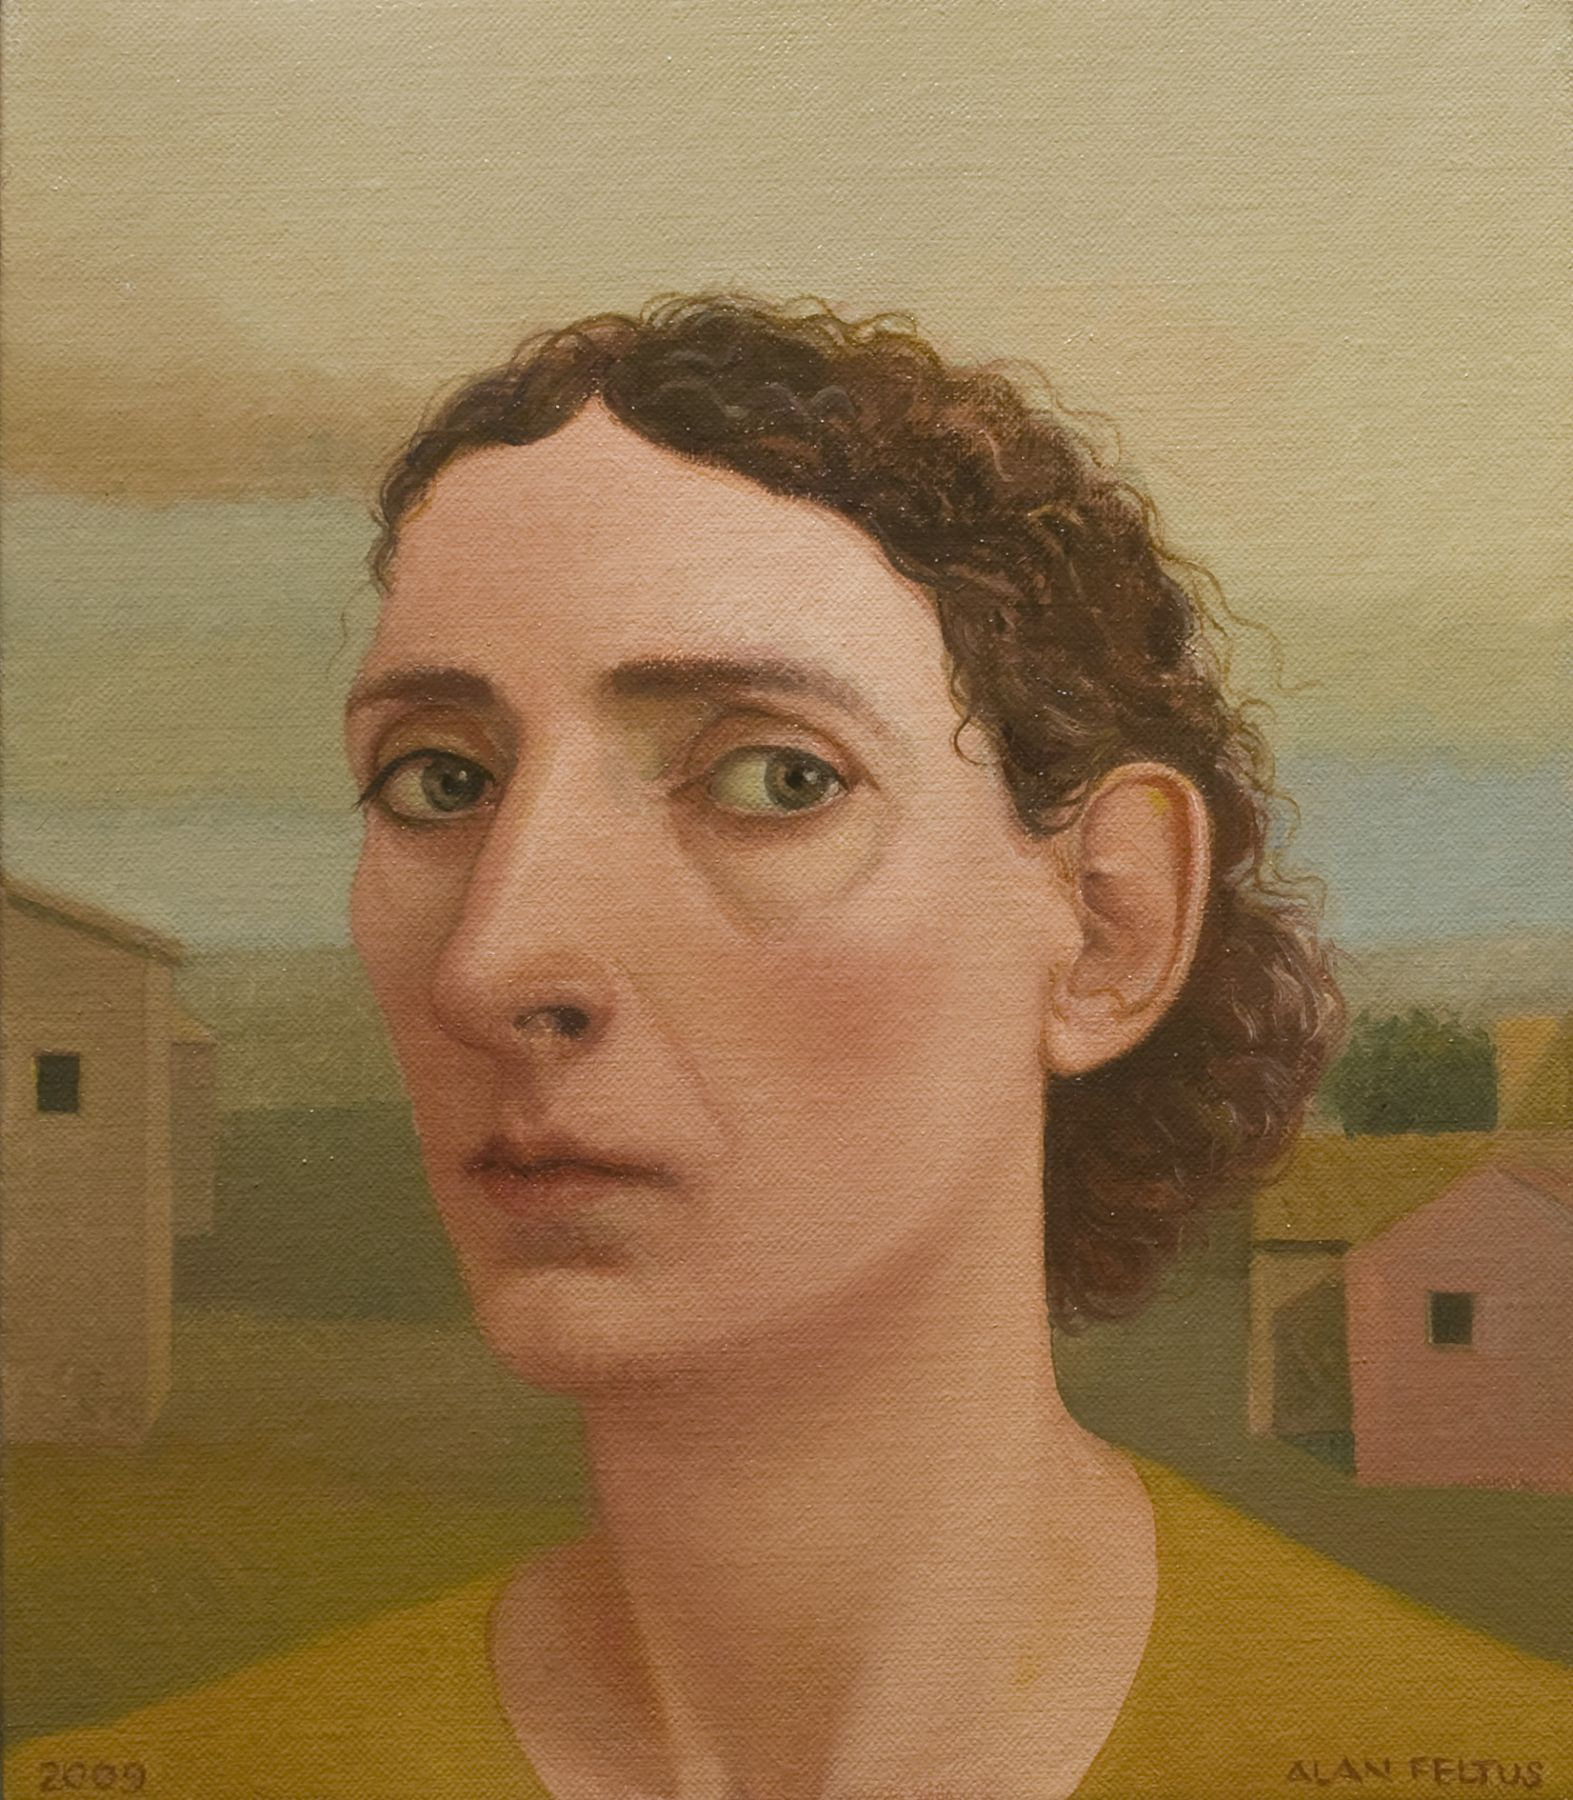 alan feltus, Talia, 2009, oil on canvas, 13 3/4 x 11 3/4 inches